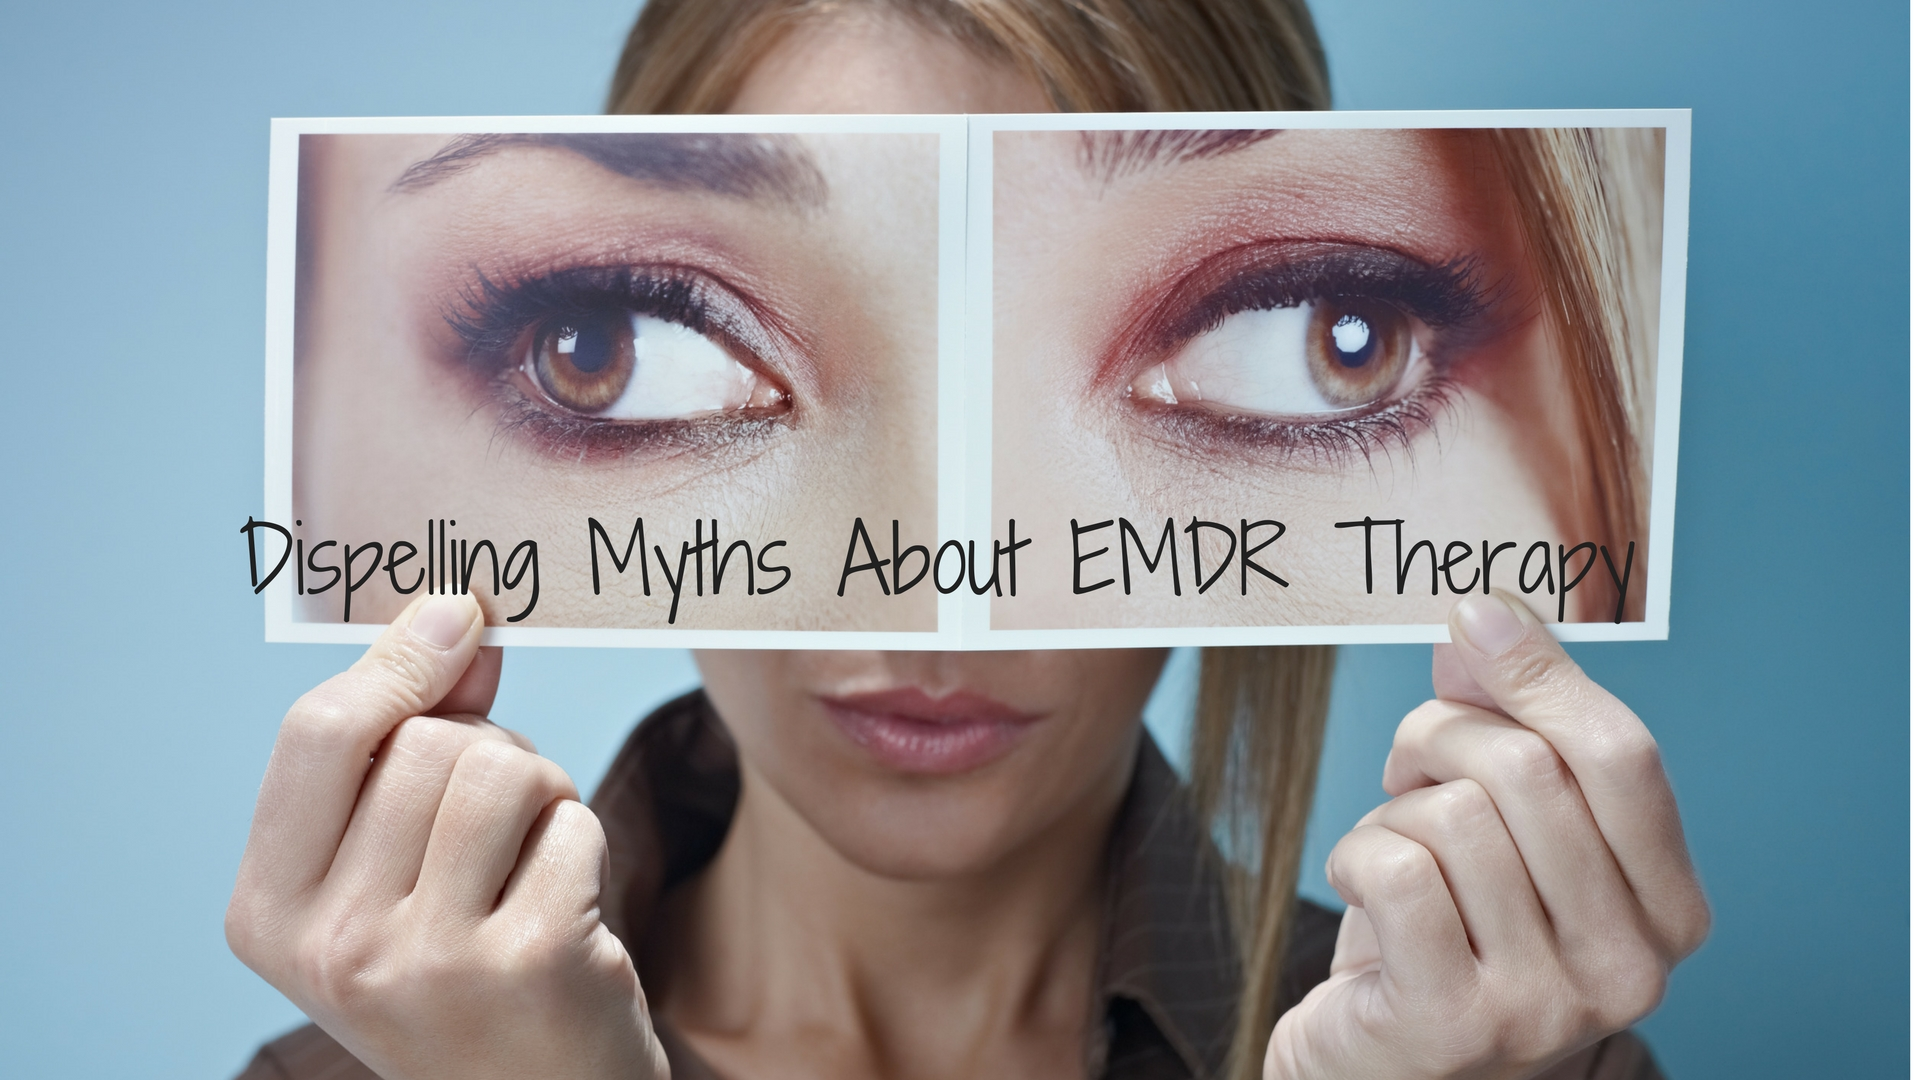 Dispelling myths about emdr therapy greenwood counseling center view larger image eye movements solutioingenieria Choice Image